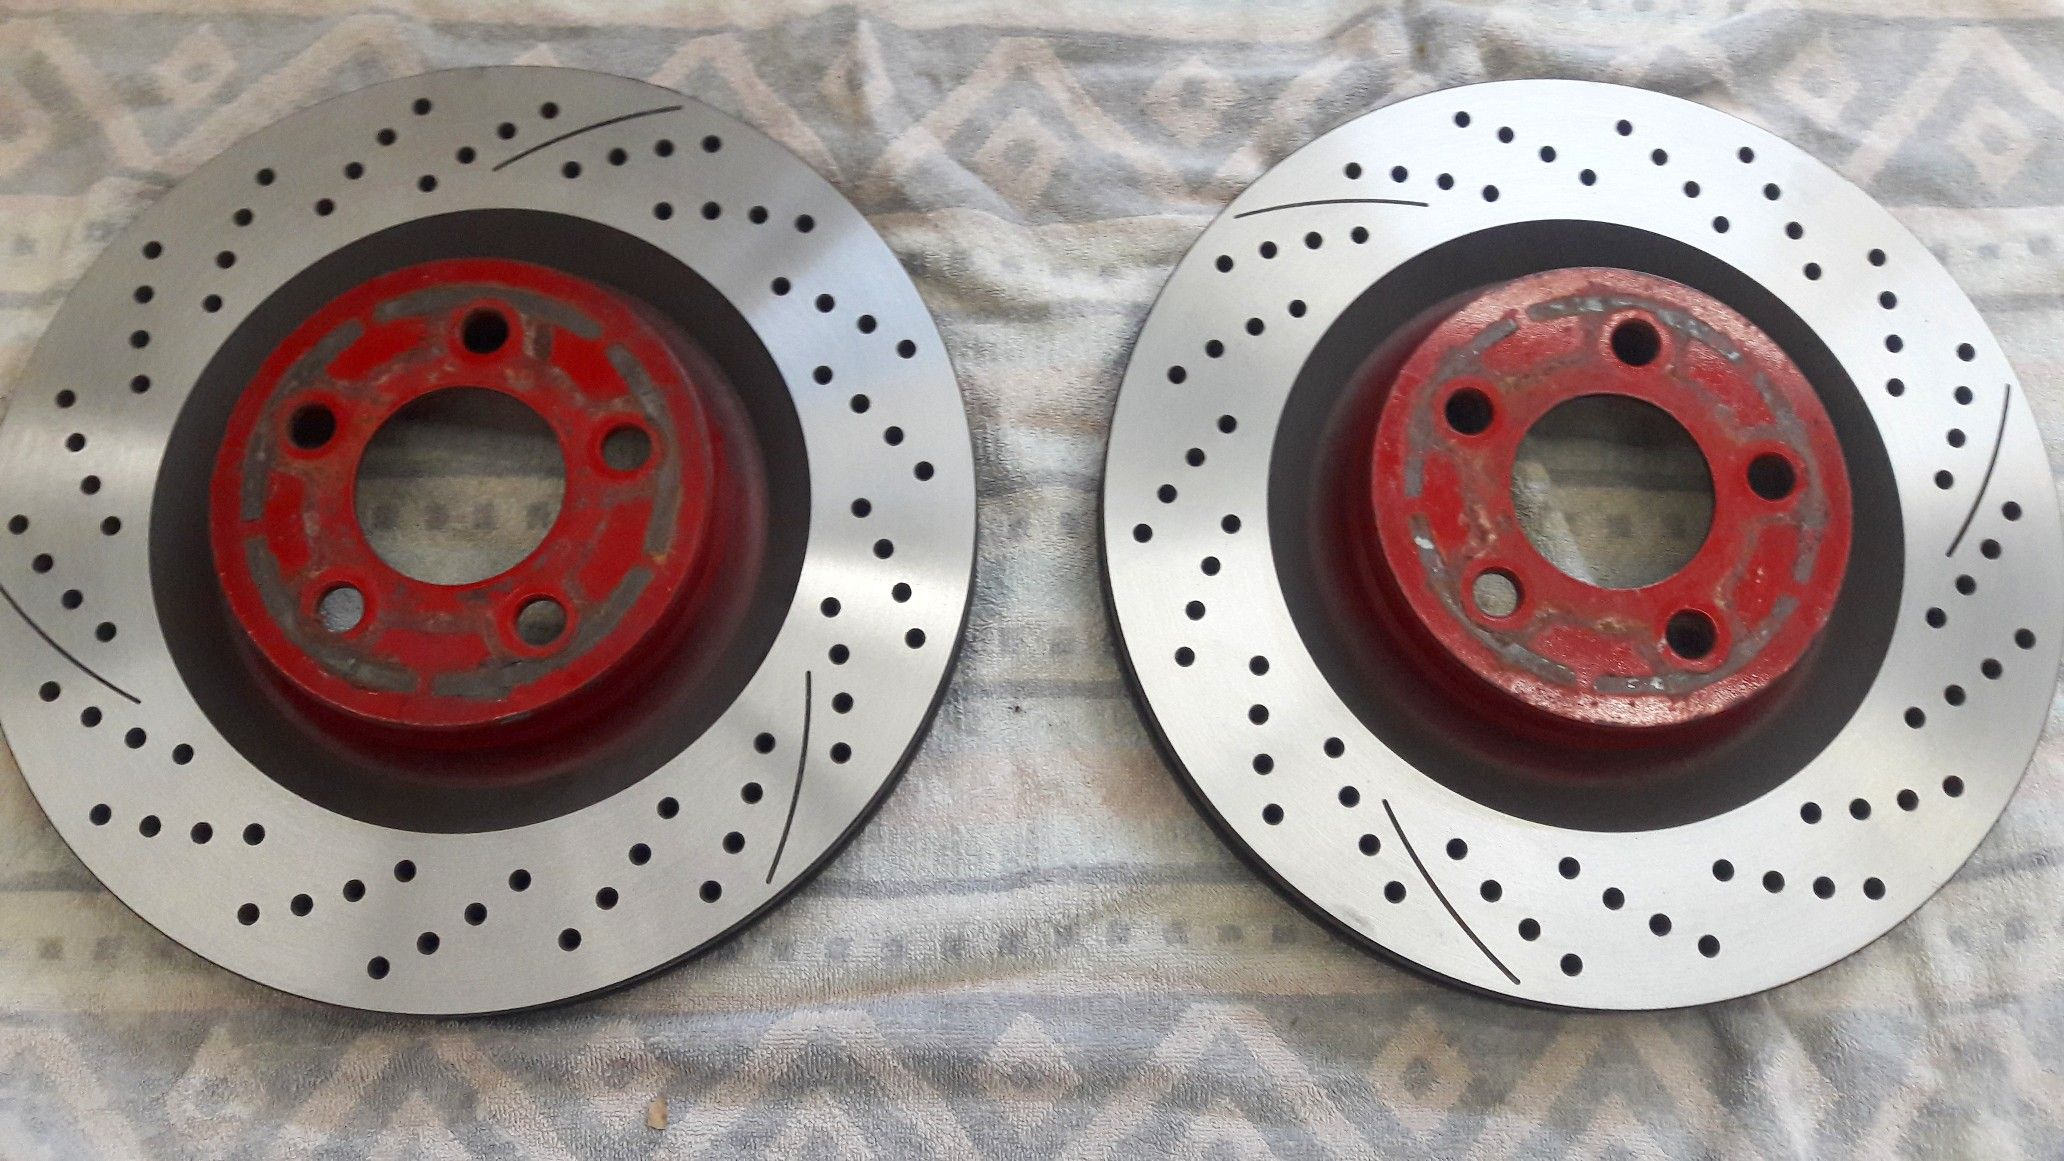 Working on the brakes today  The rotors look so good right